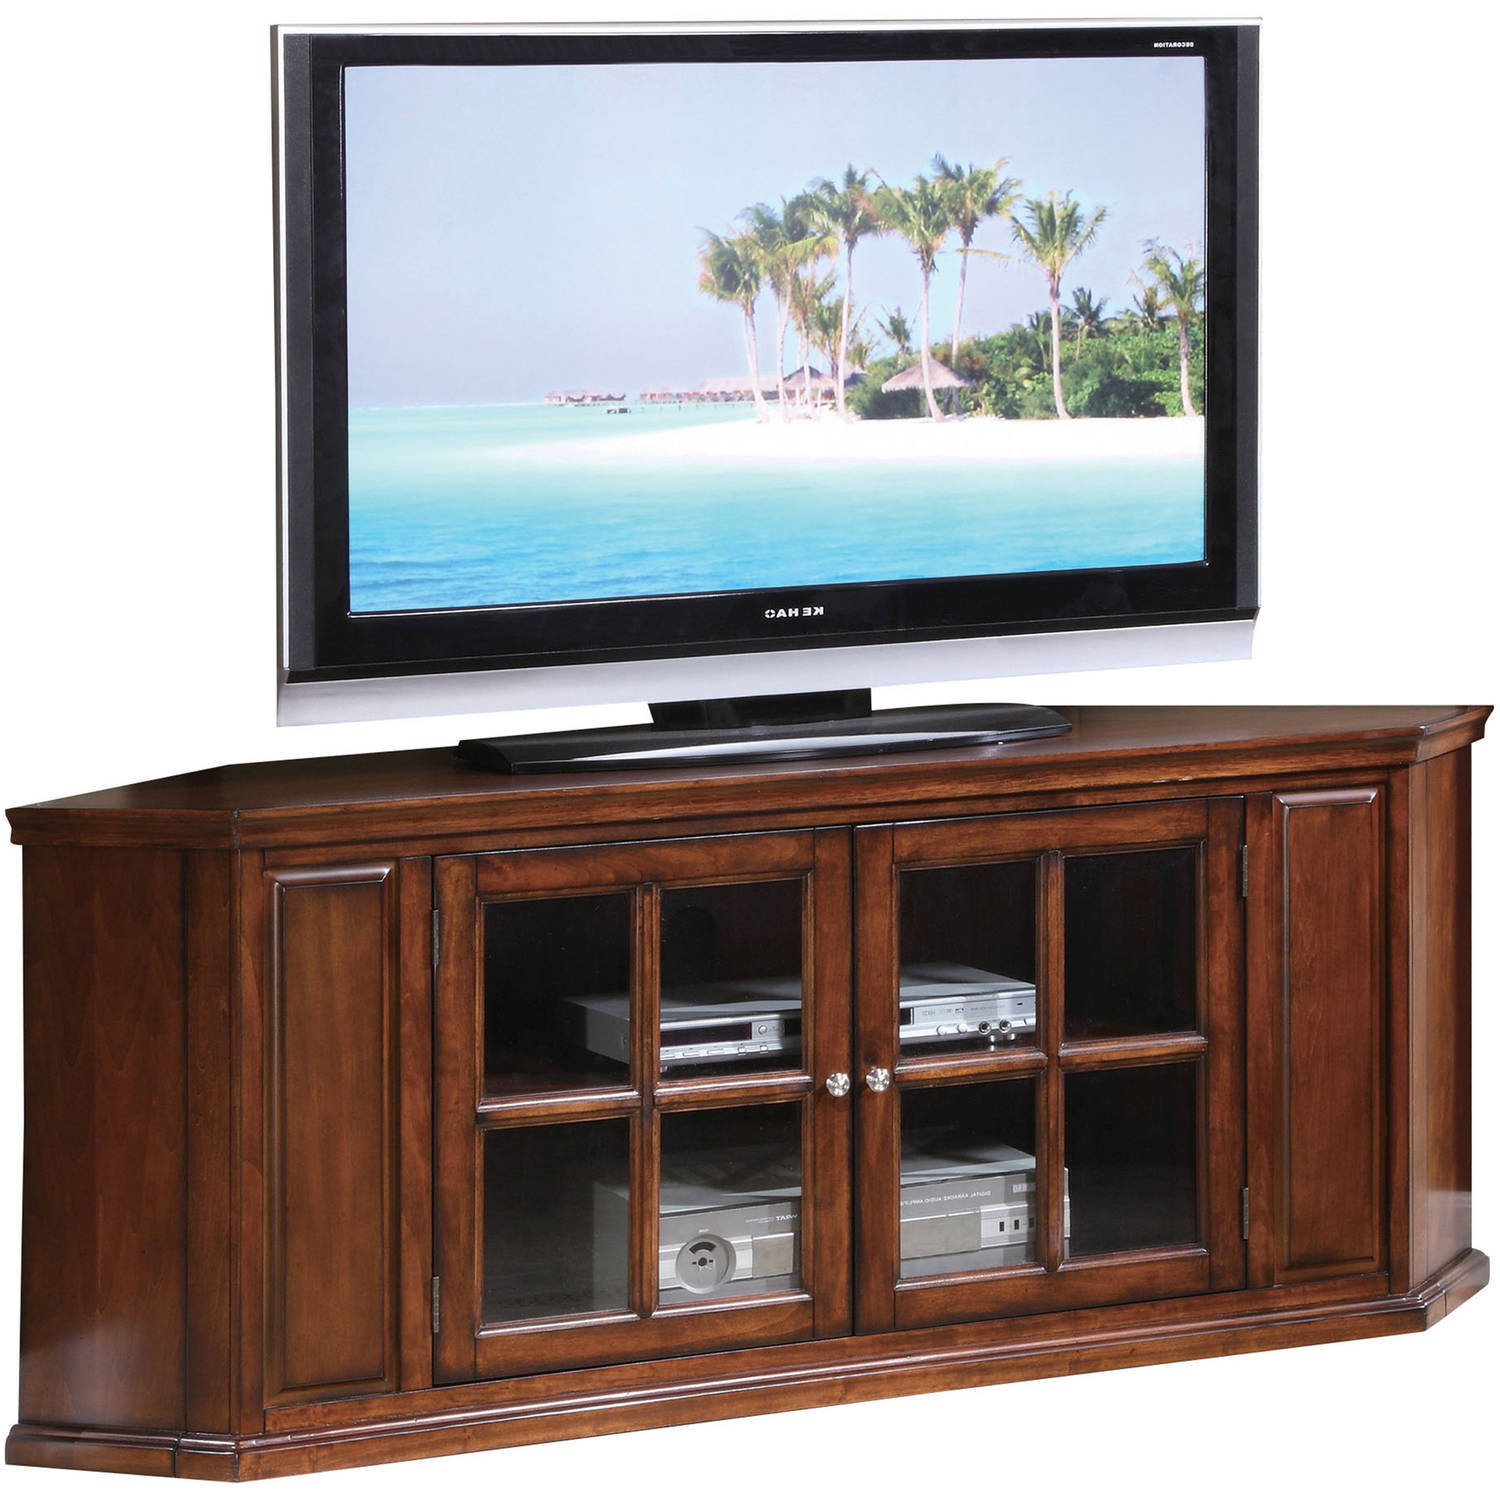 Acme Remington Brown Cherry TV Stand for TV up to 70""